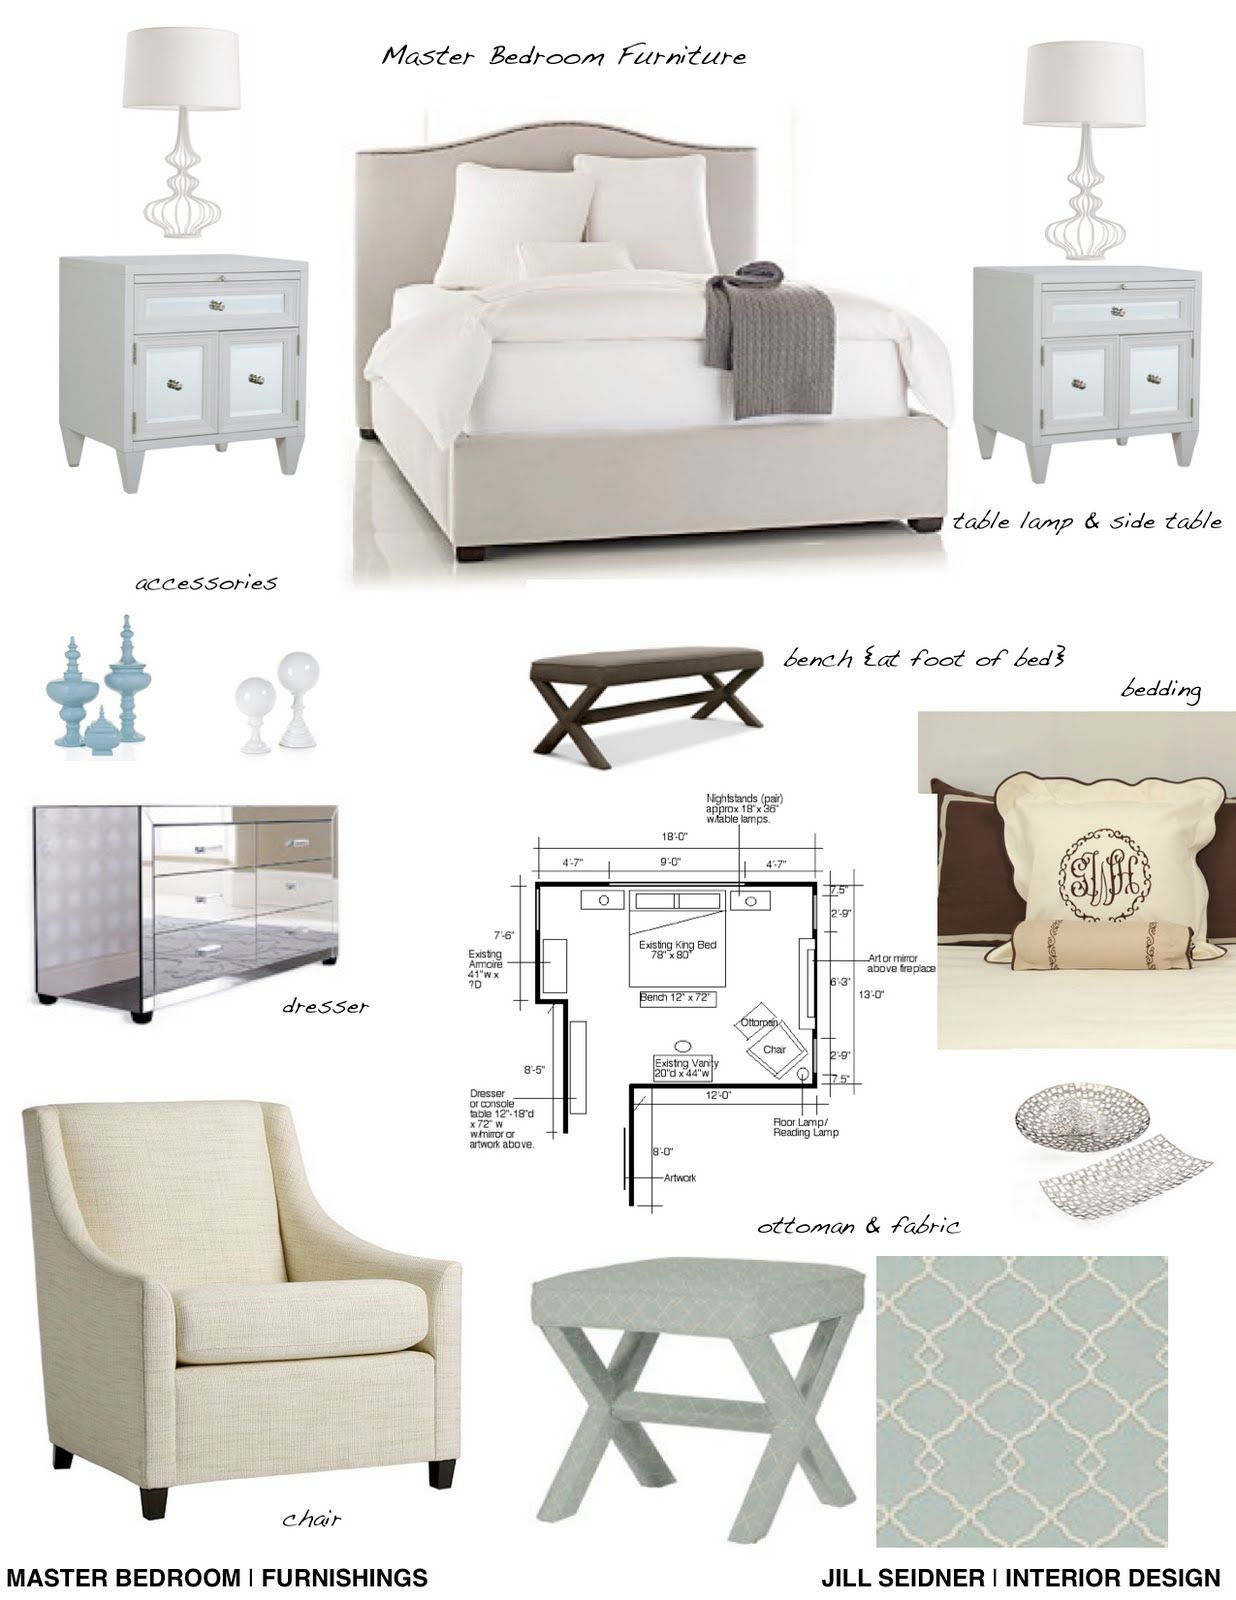 Beautiful Interior Design Concept Board With Jill Seidner For Boat Project